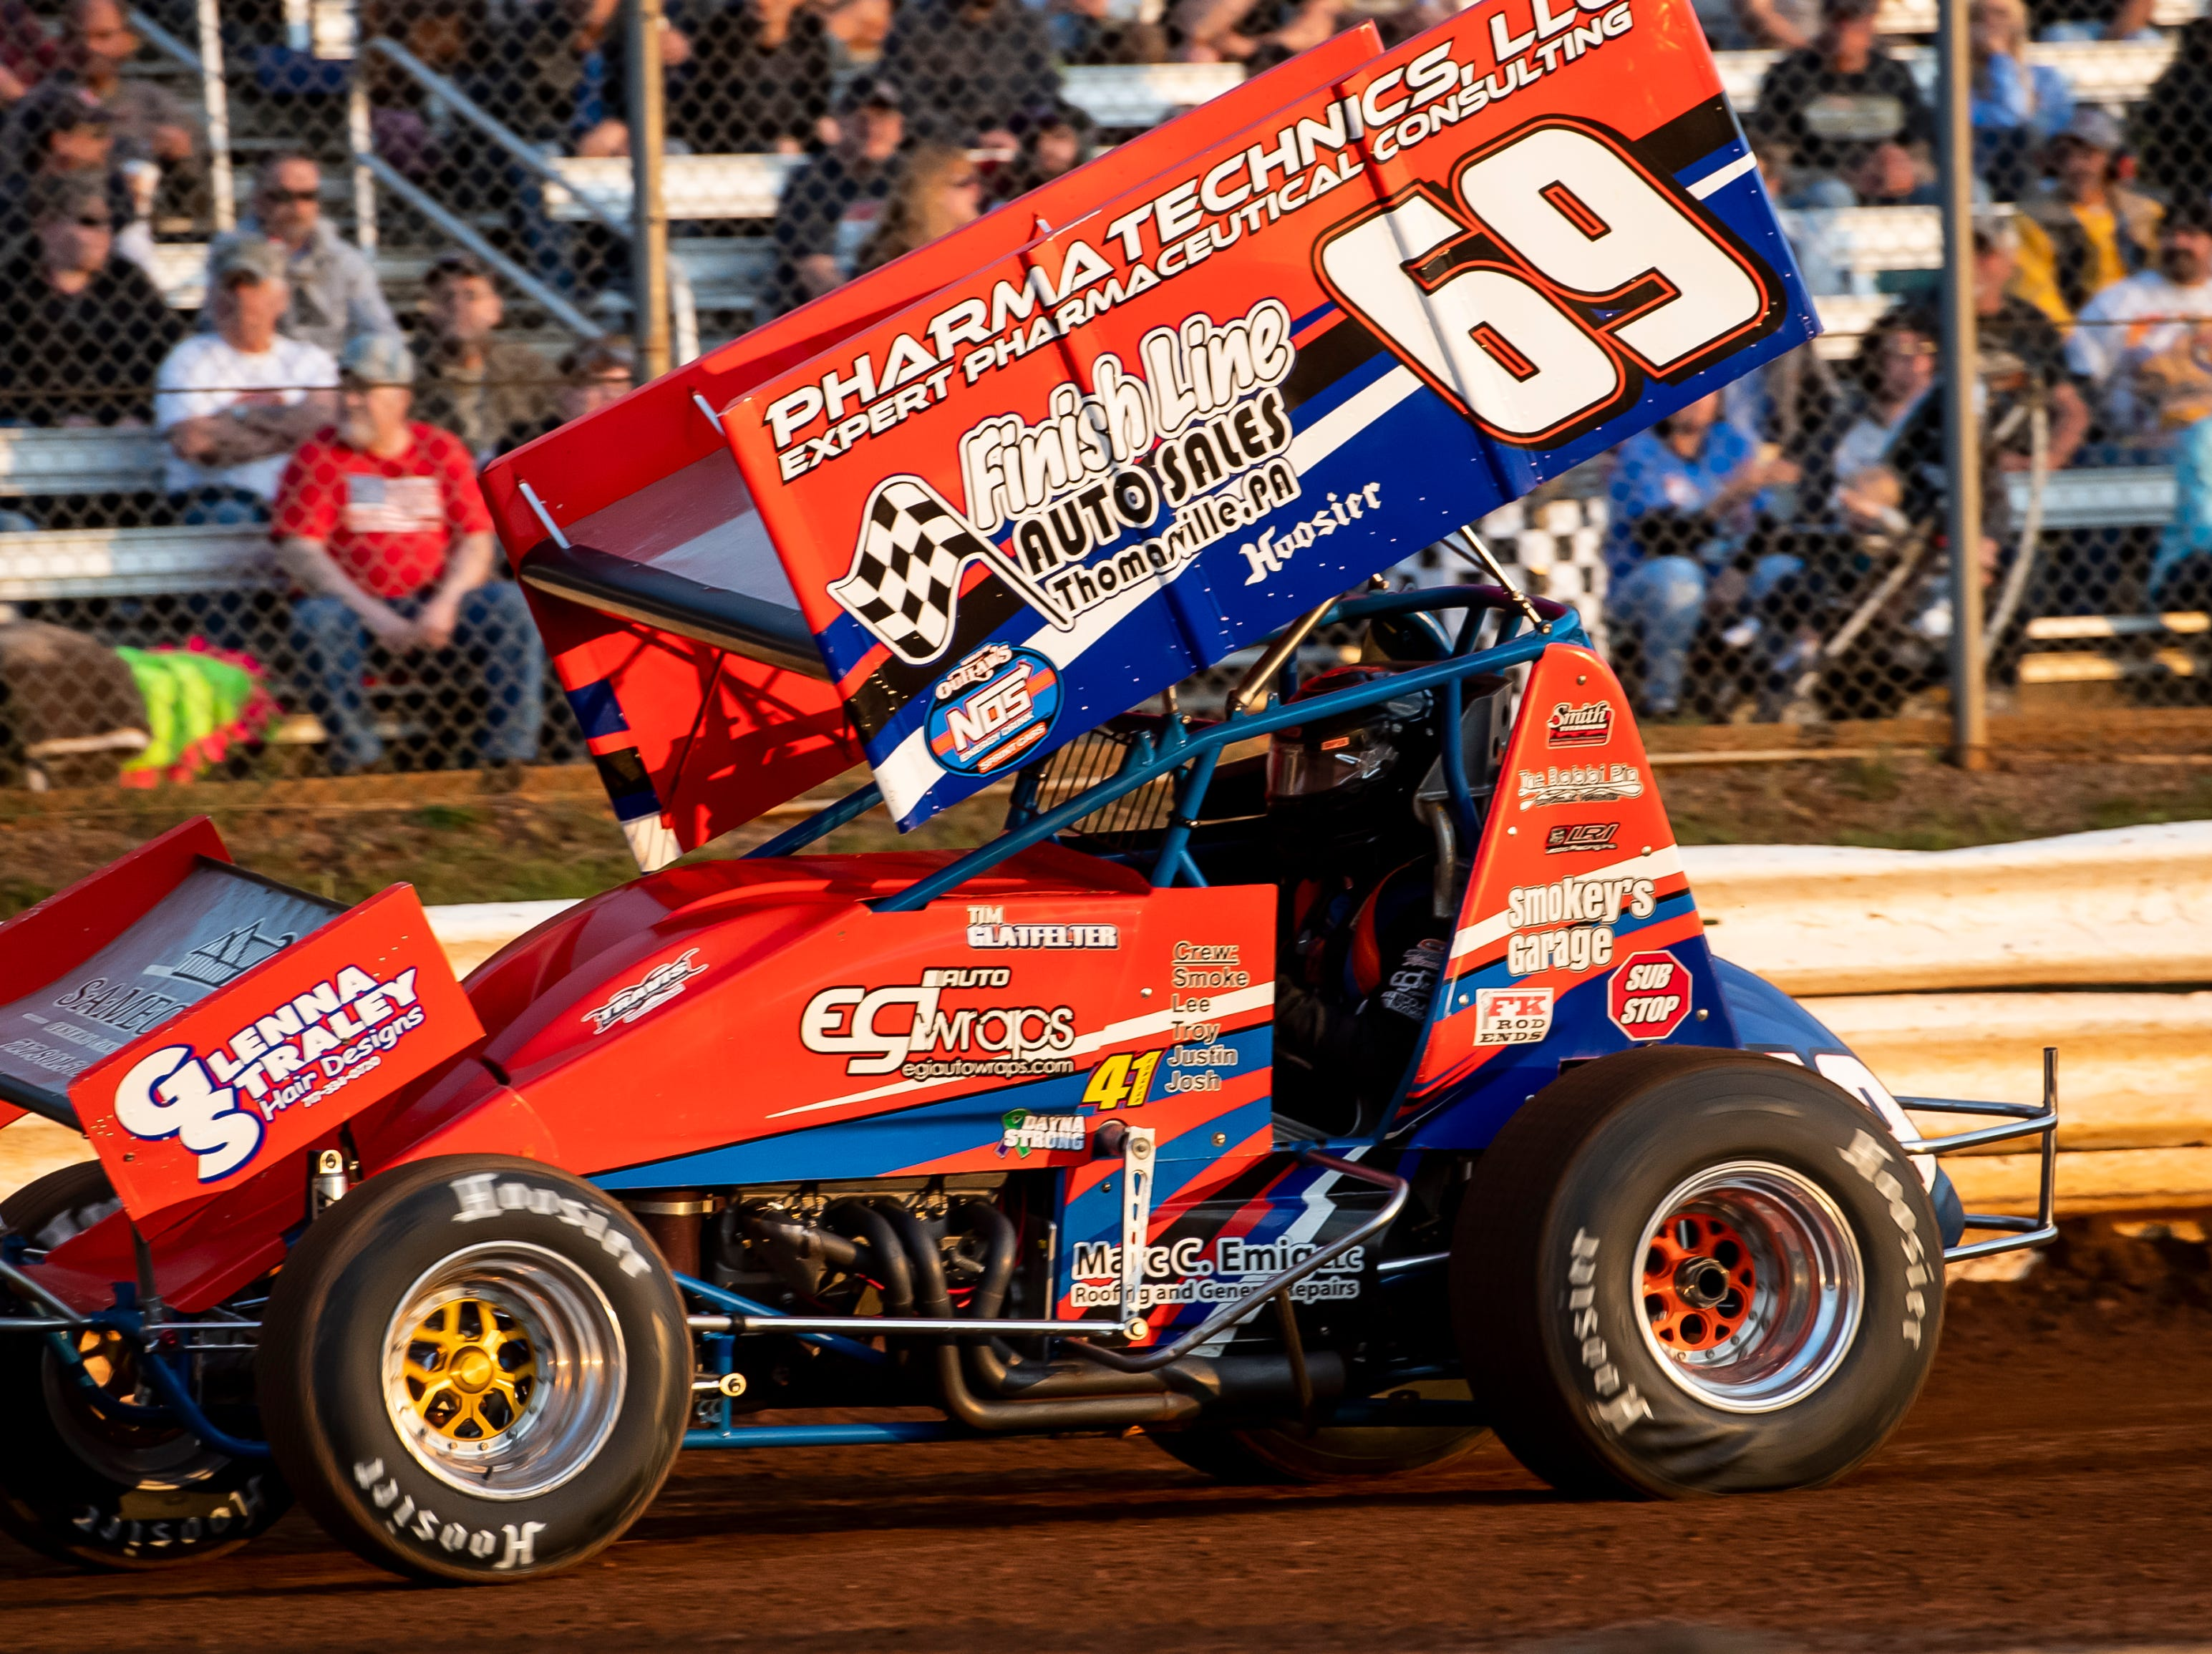 Tim Glatfelter drives the number 69 car during time trials in the World of Outlaws Gettysburg Clash at Lincoln Speedway in Abbottstown on Wednesday, May 15, 2019.